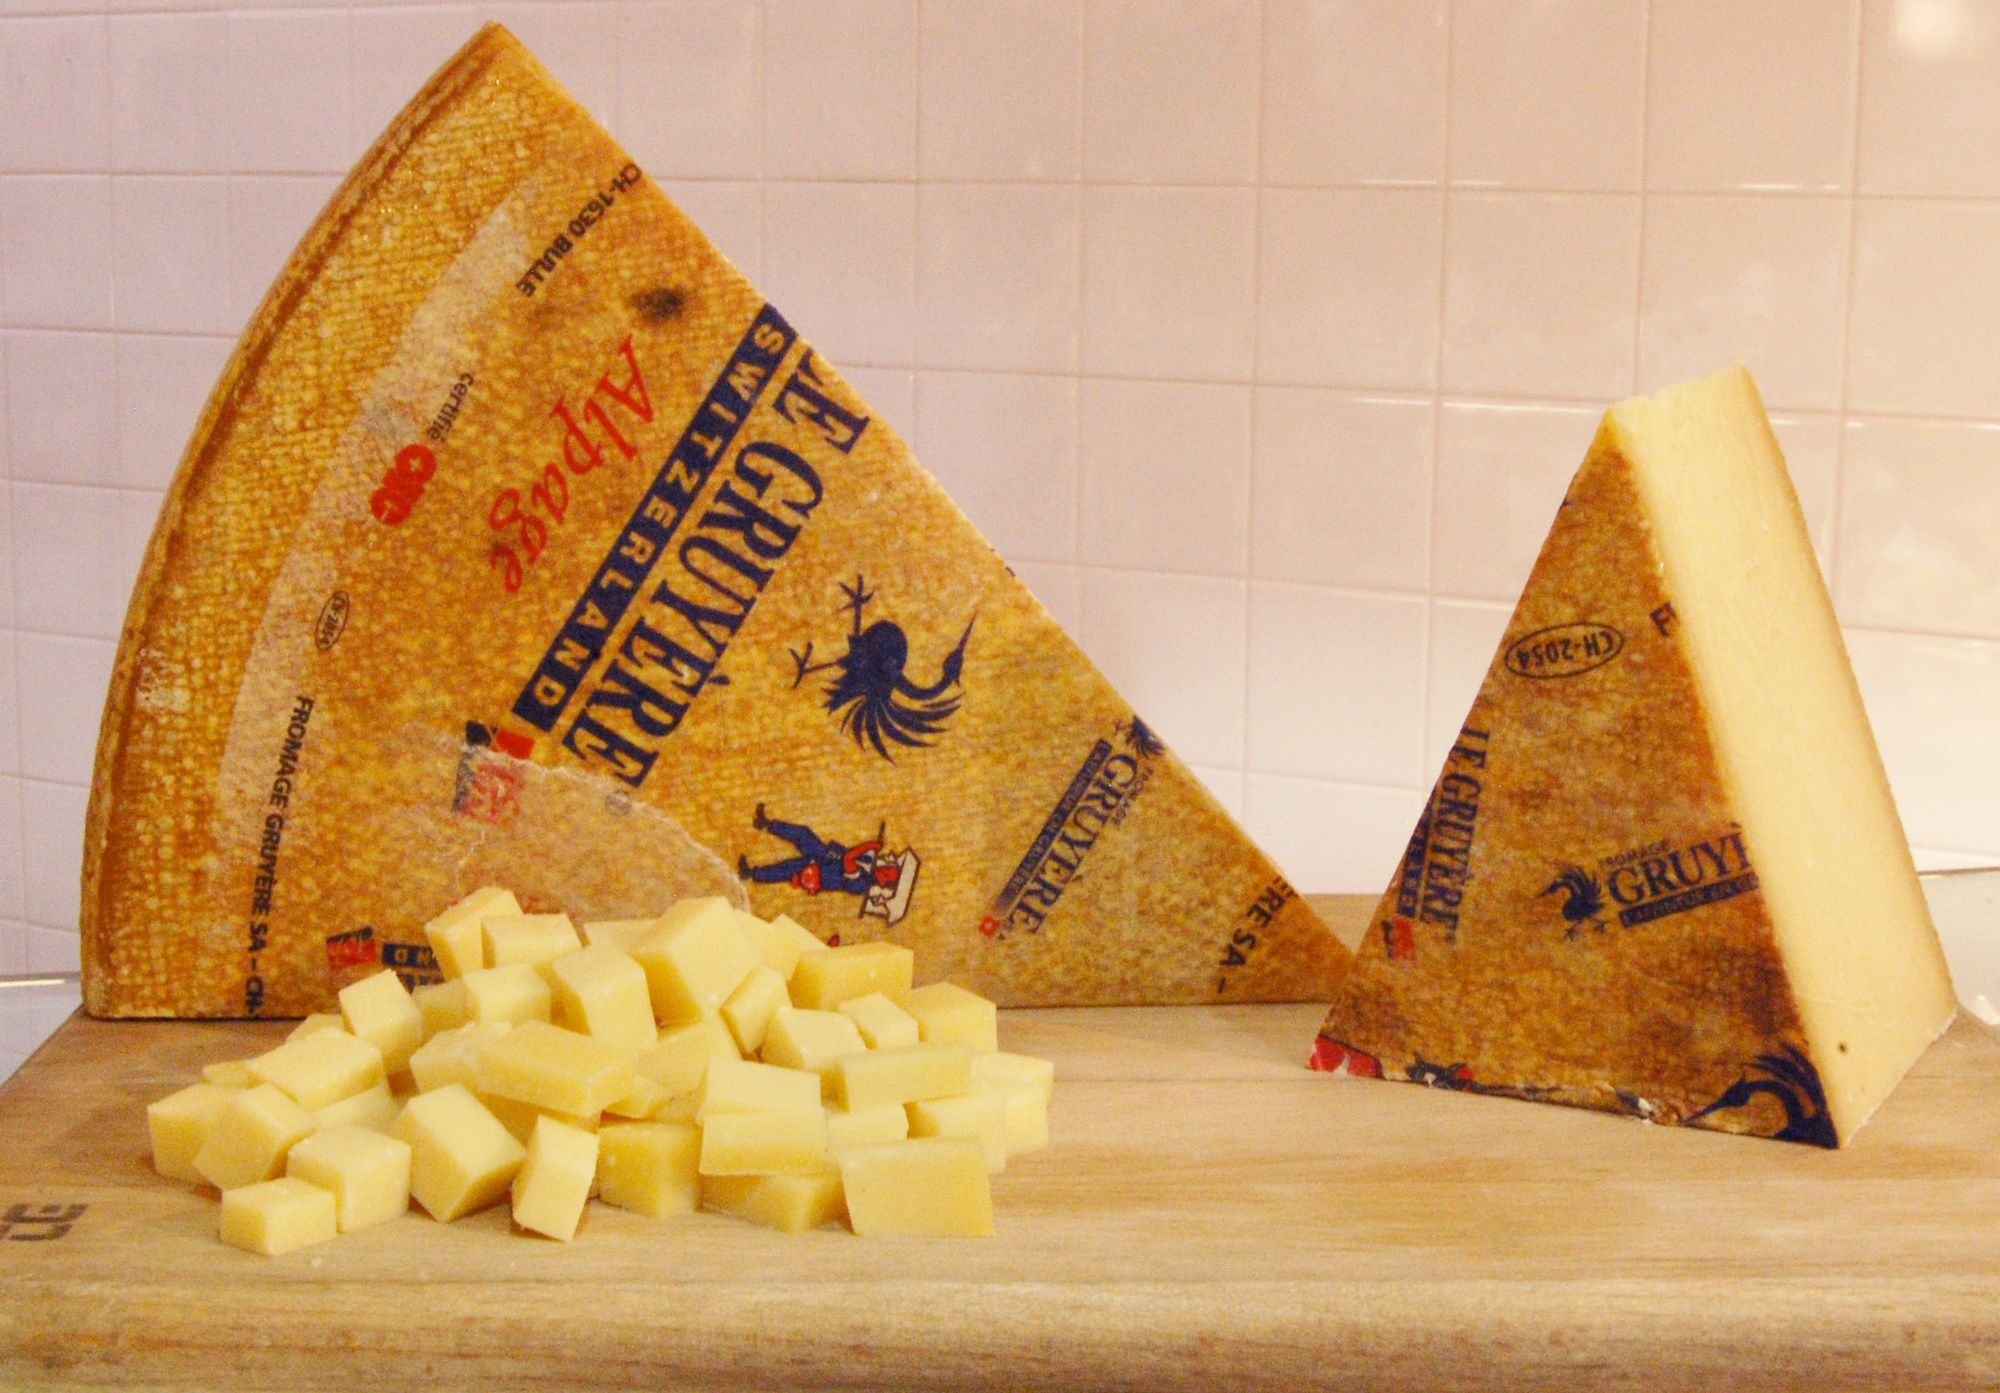 Le Gruyere Alpage AOP cheese house of bruar delicatessen counter